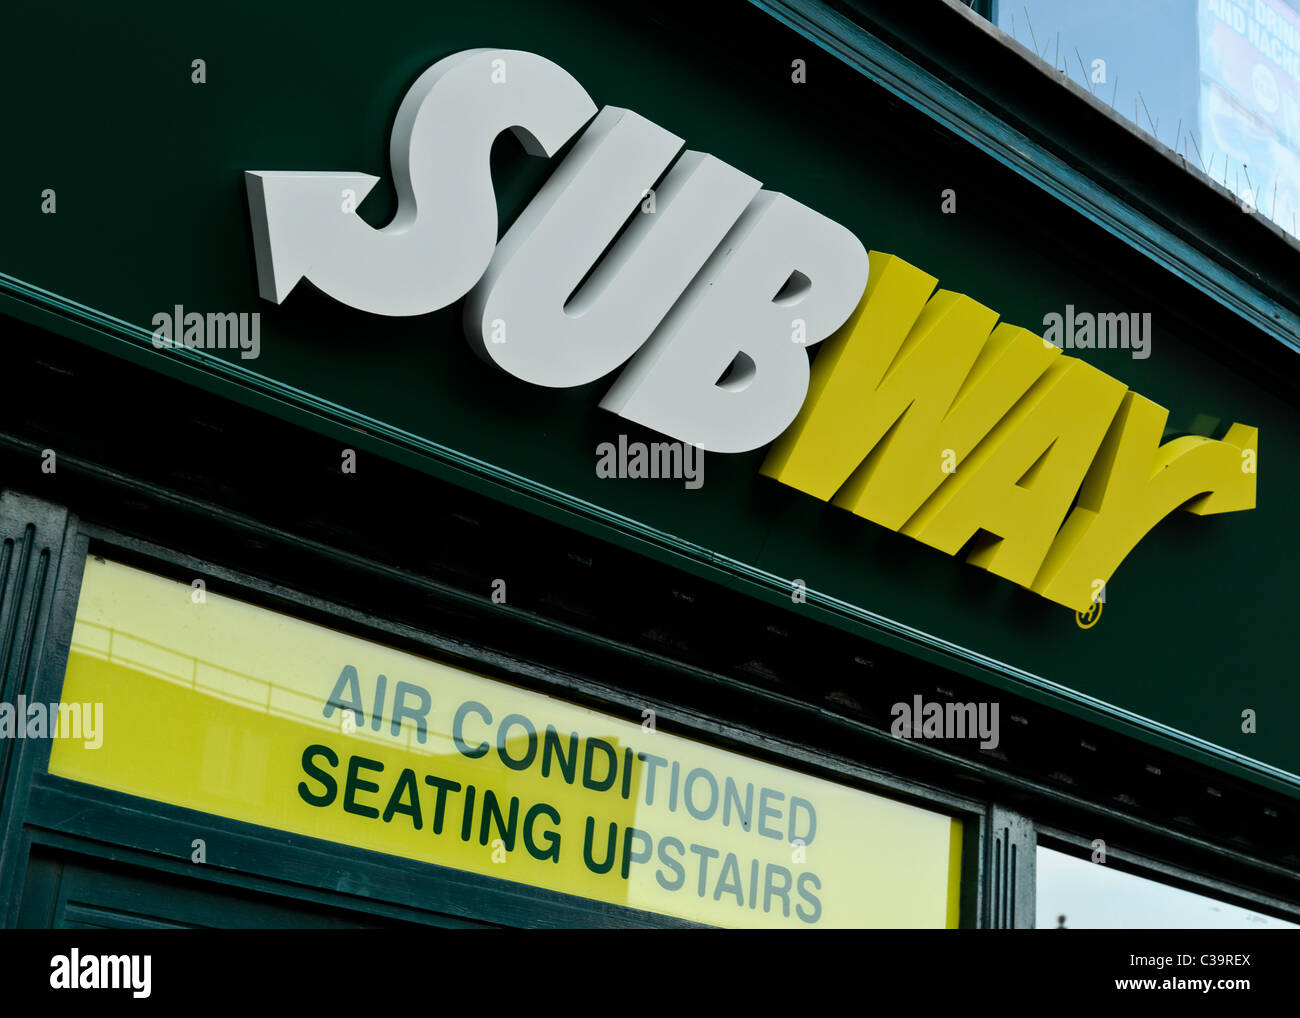 Fast Food Outlet Names